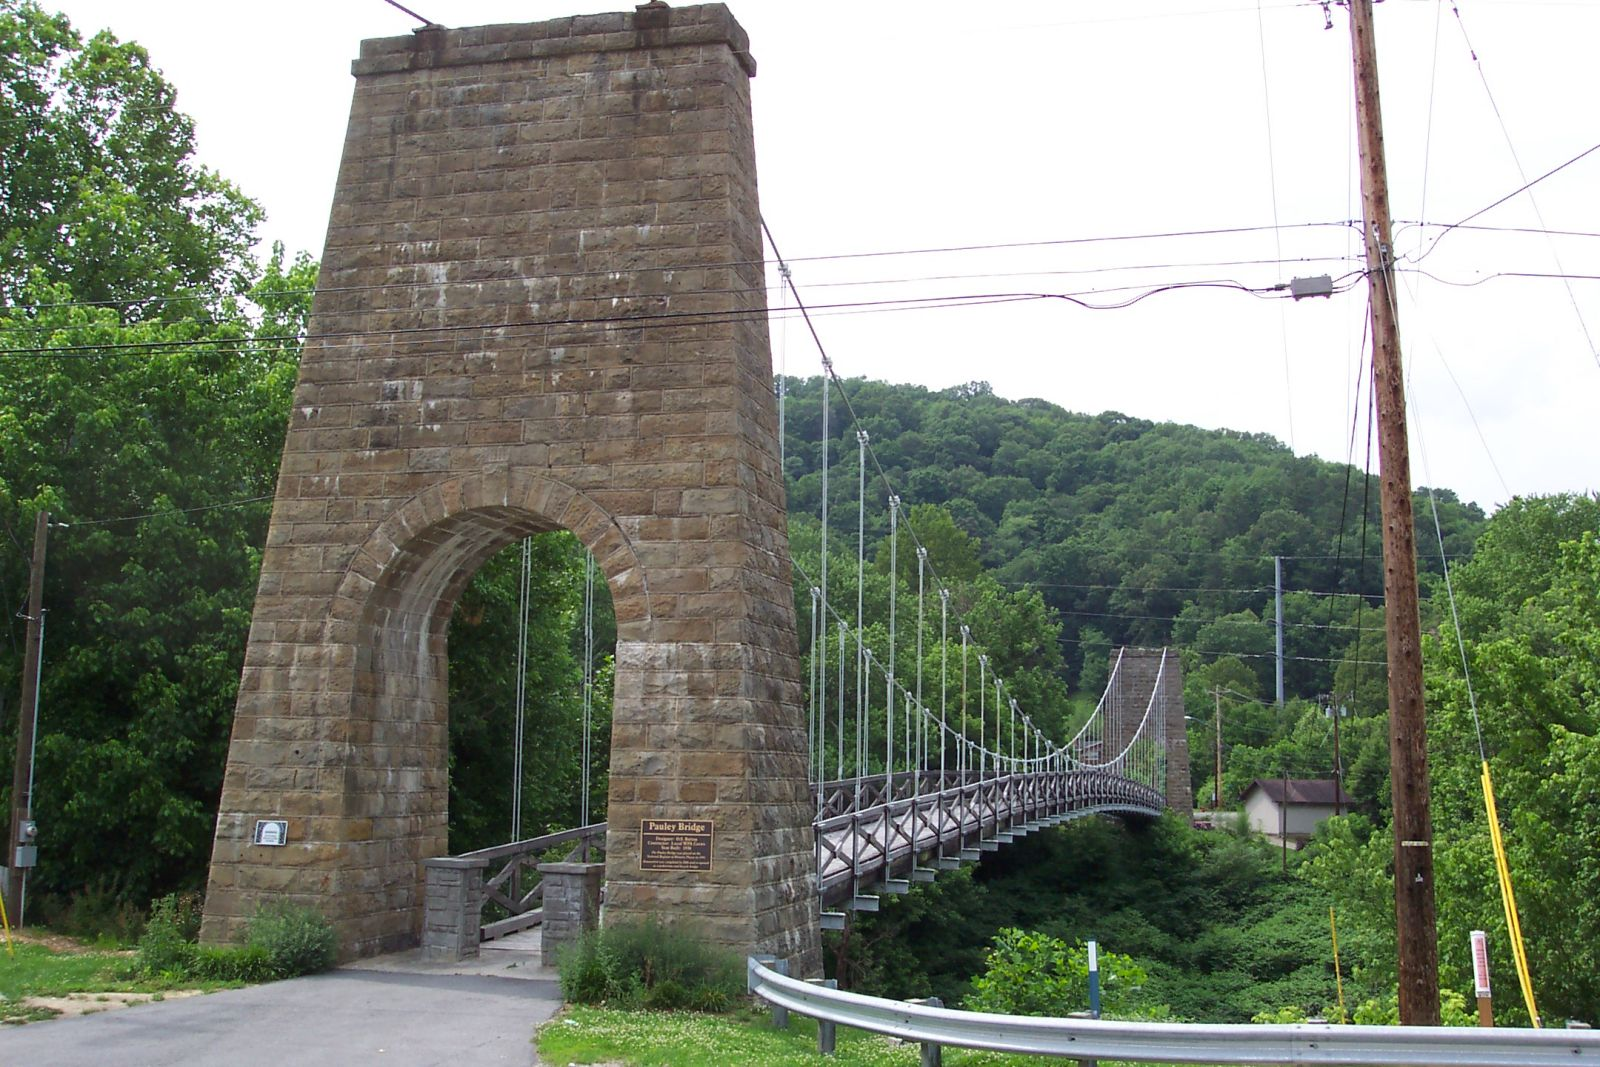 Side view of the bridge